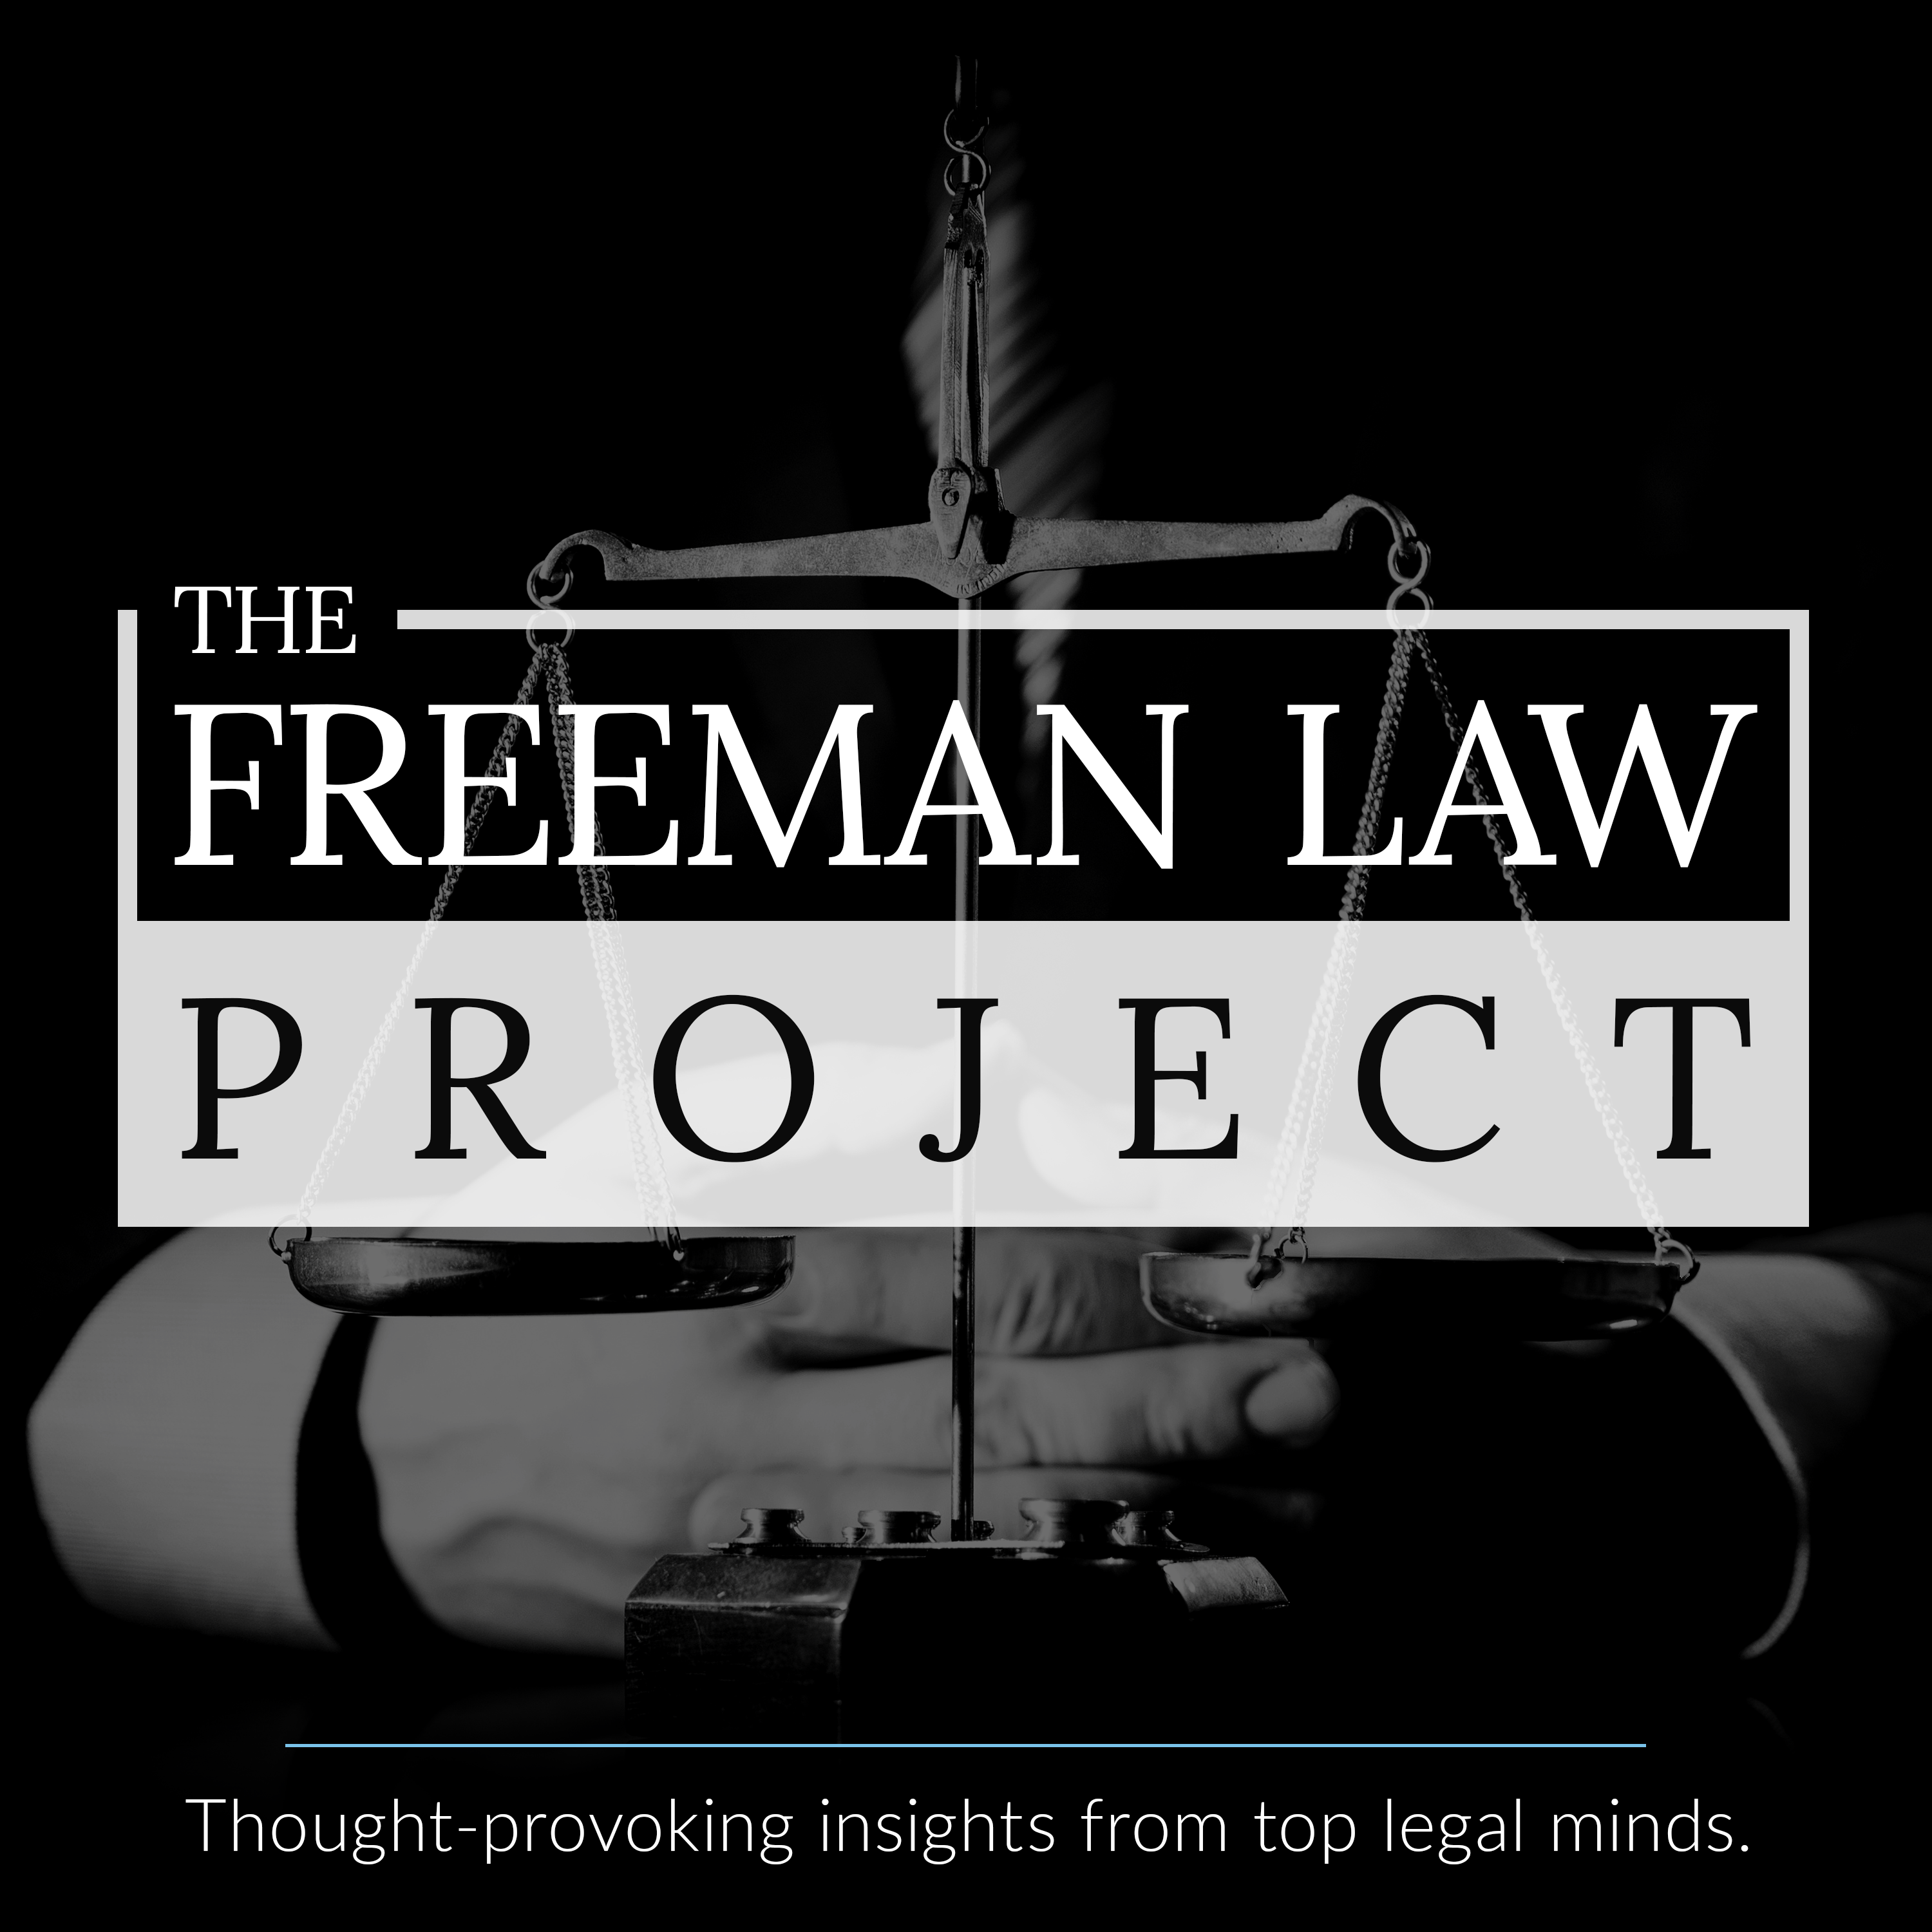 Artwork for podcast The Freeman Law Project